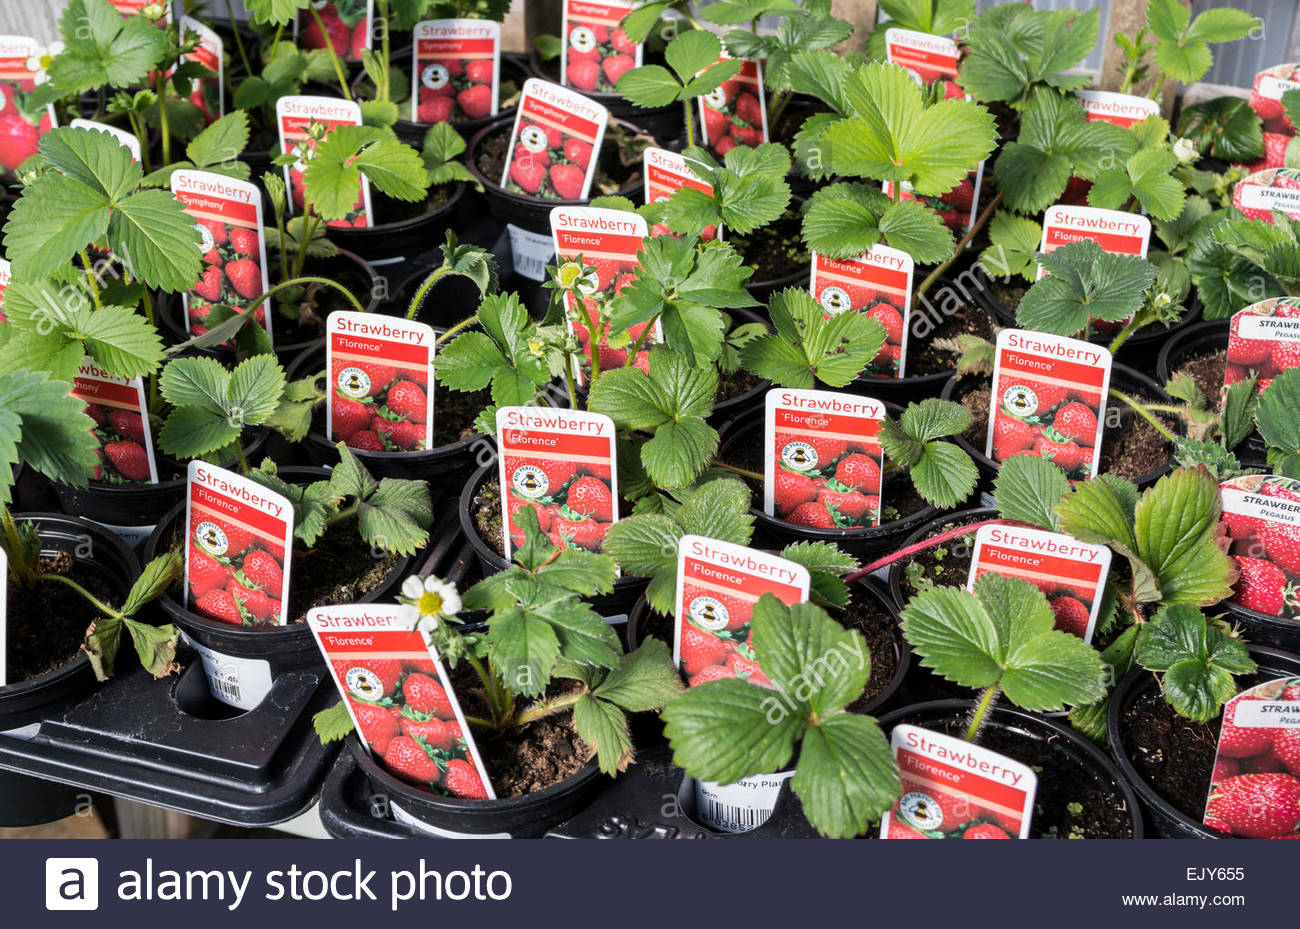 Strawberry Plants For Sale Stock Photos & Strawberry Plants For ...